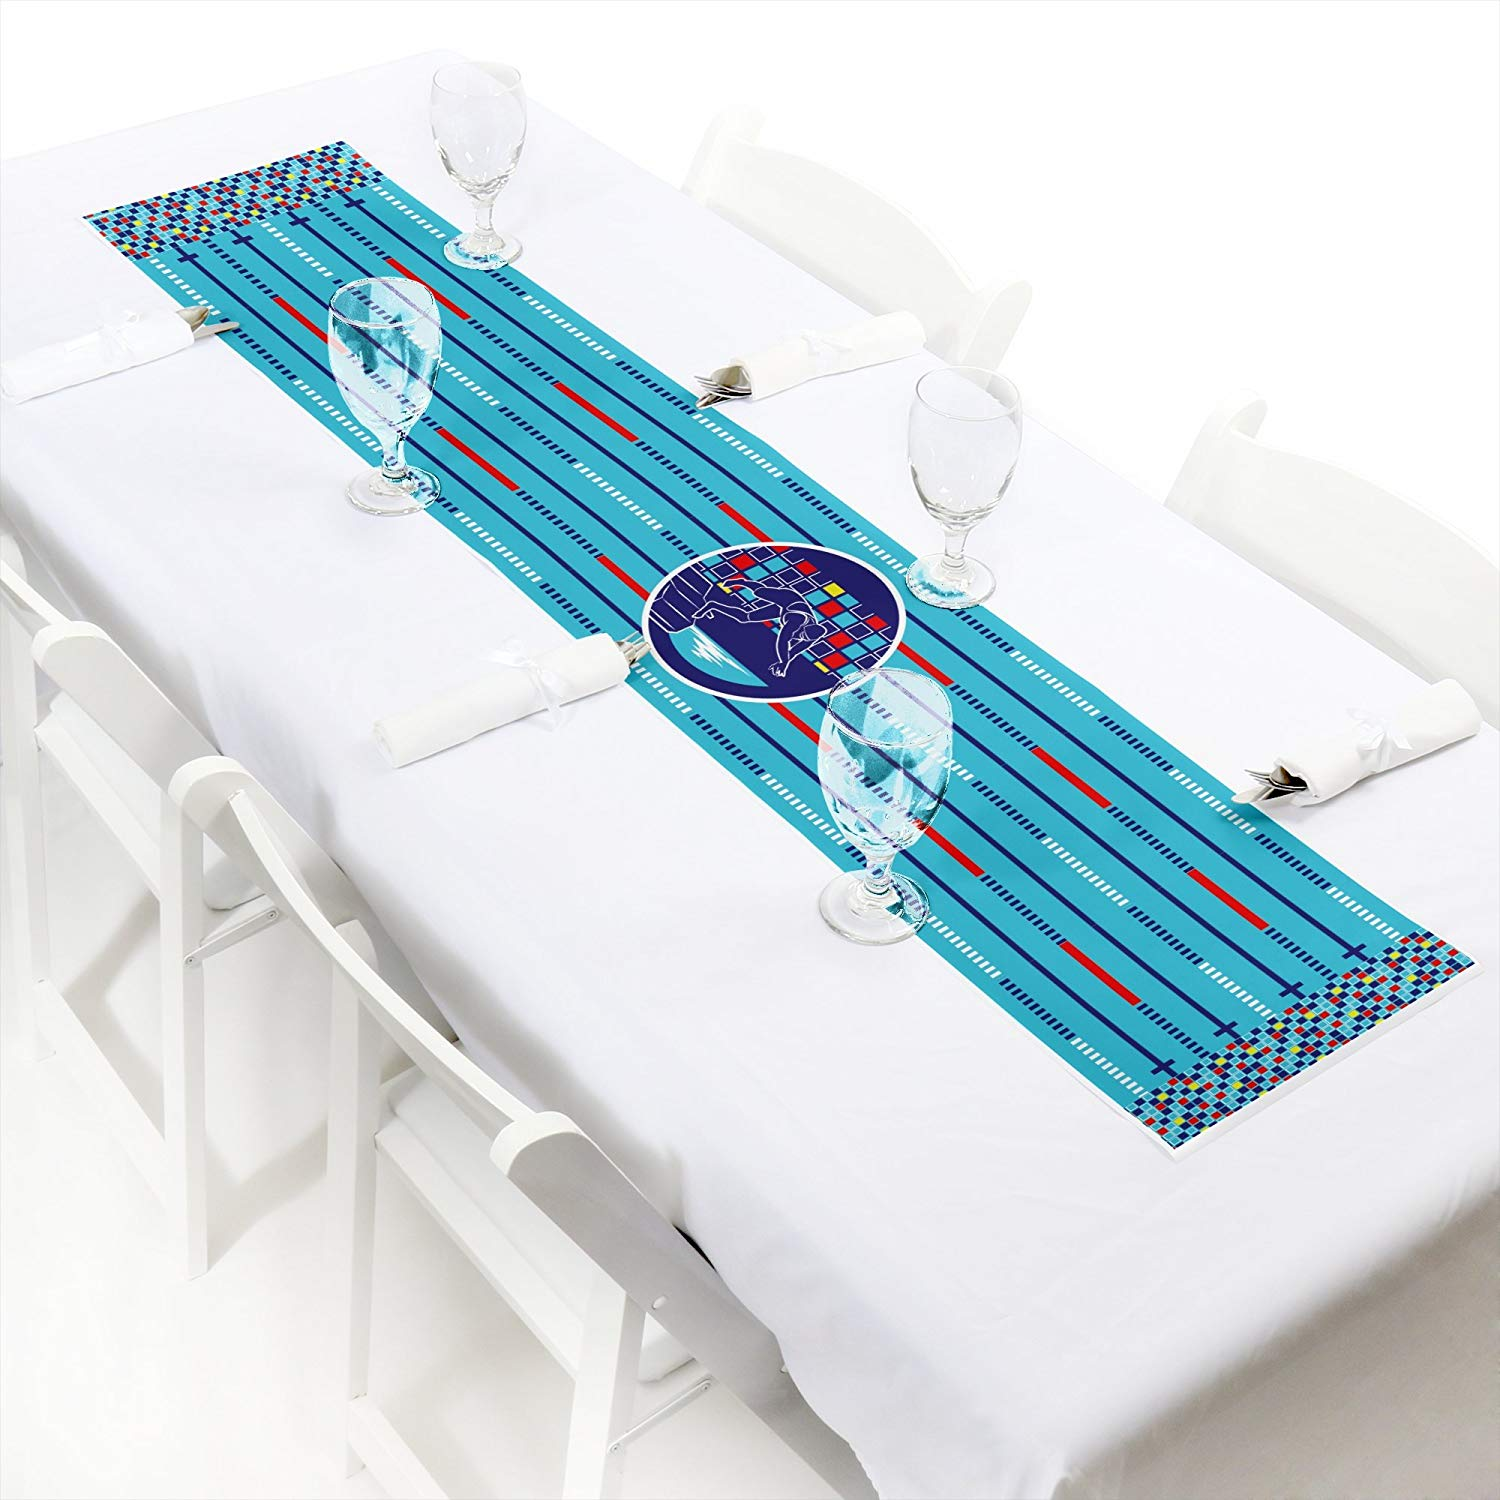 "Making Waves - Swim Team - Petite Swimming Party or Birthday Party Paper Table Runner - 12"" x 60"""